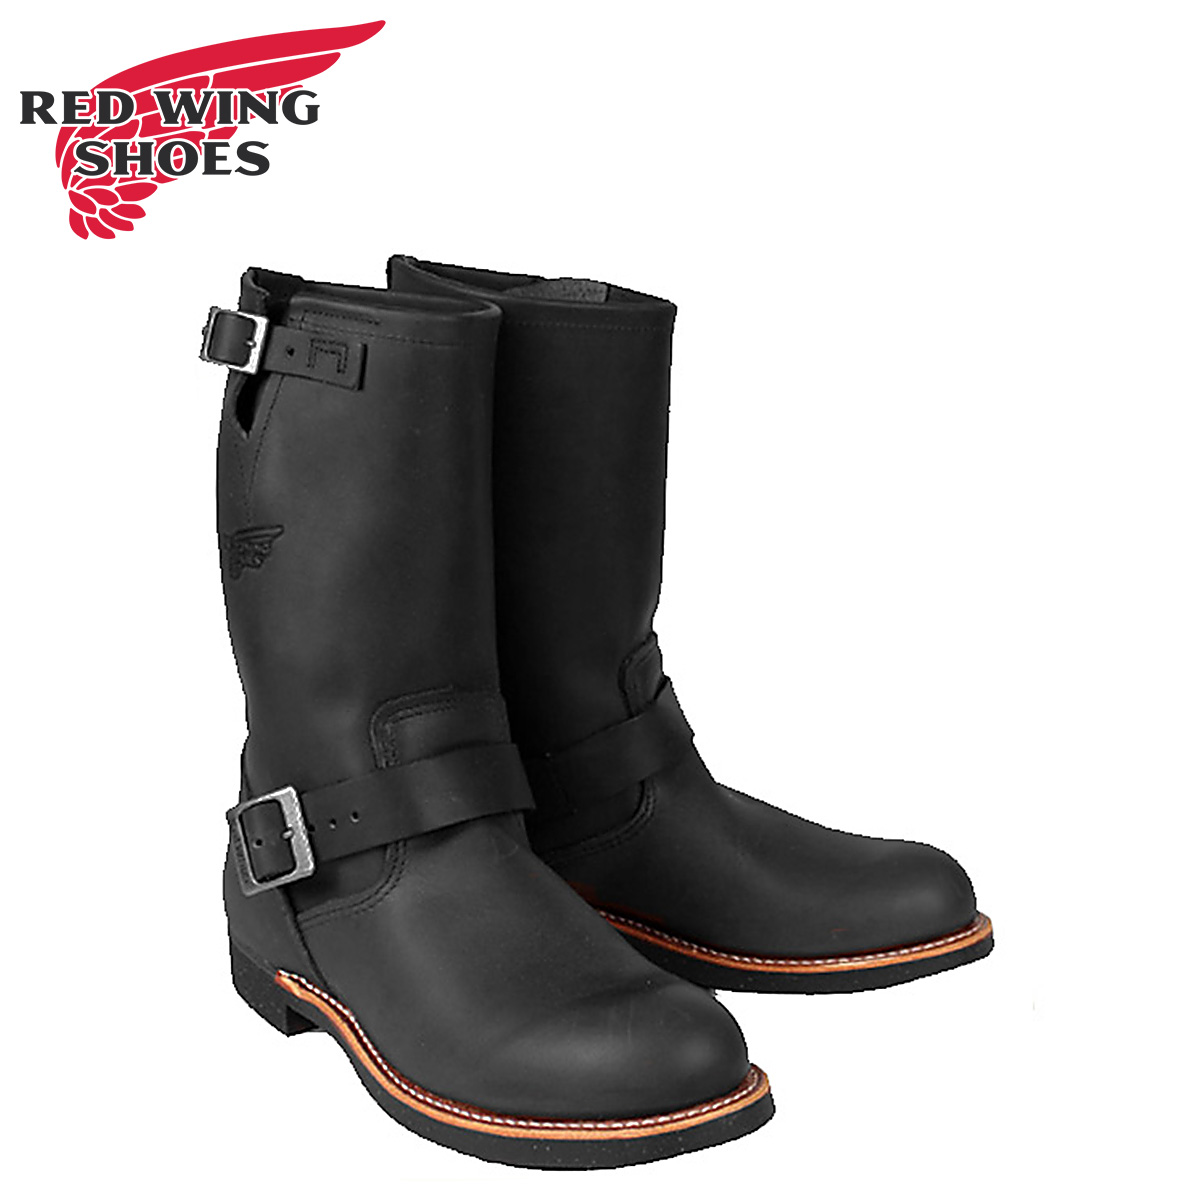 9c95258acba0 Redwing RED WING Engineer Boots 2990 Engineer Boot leather mens Made in USA  Red Wing